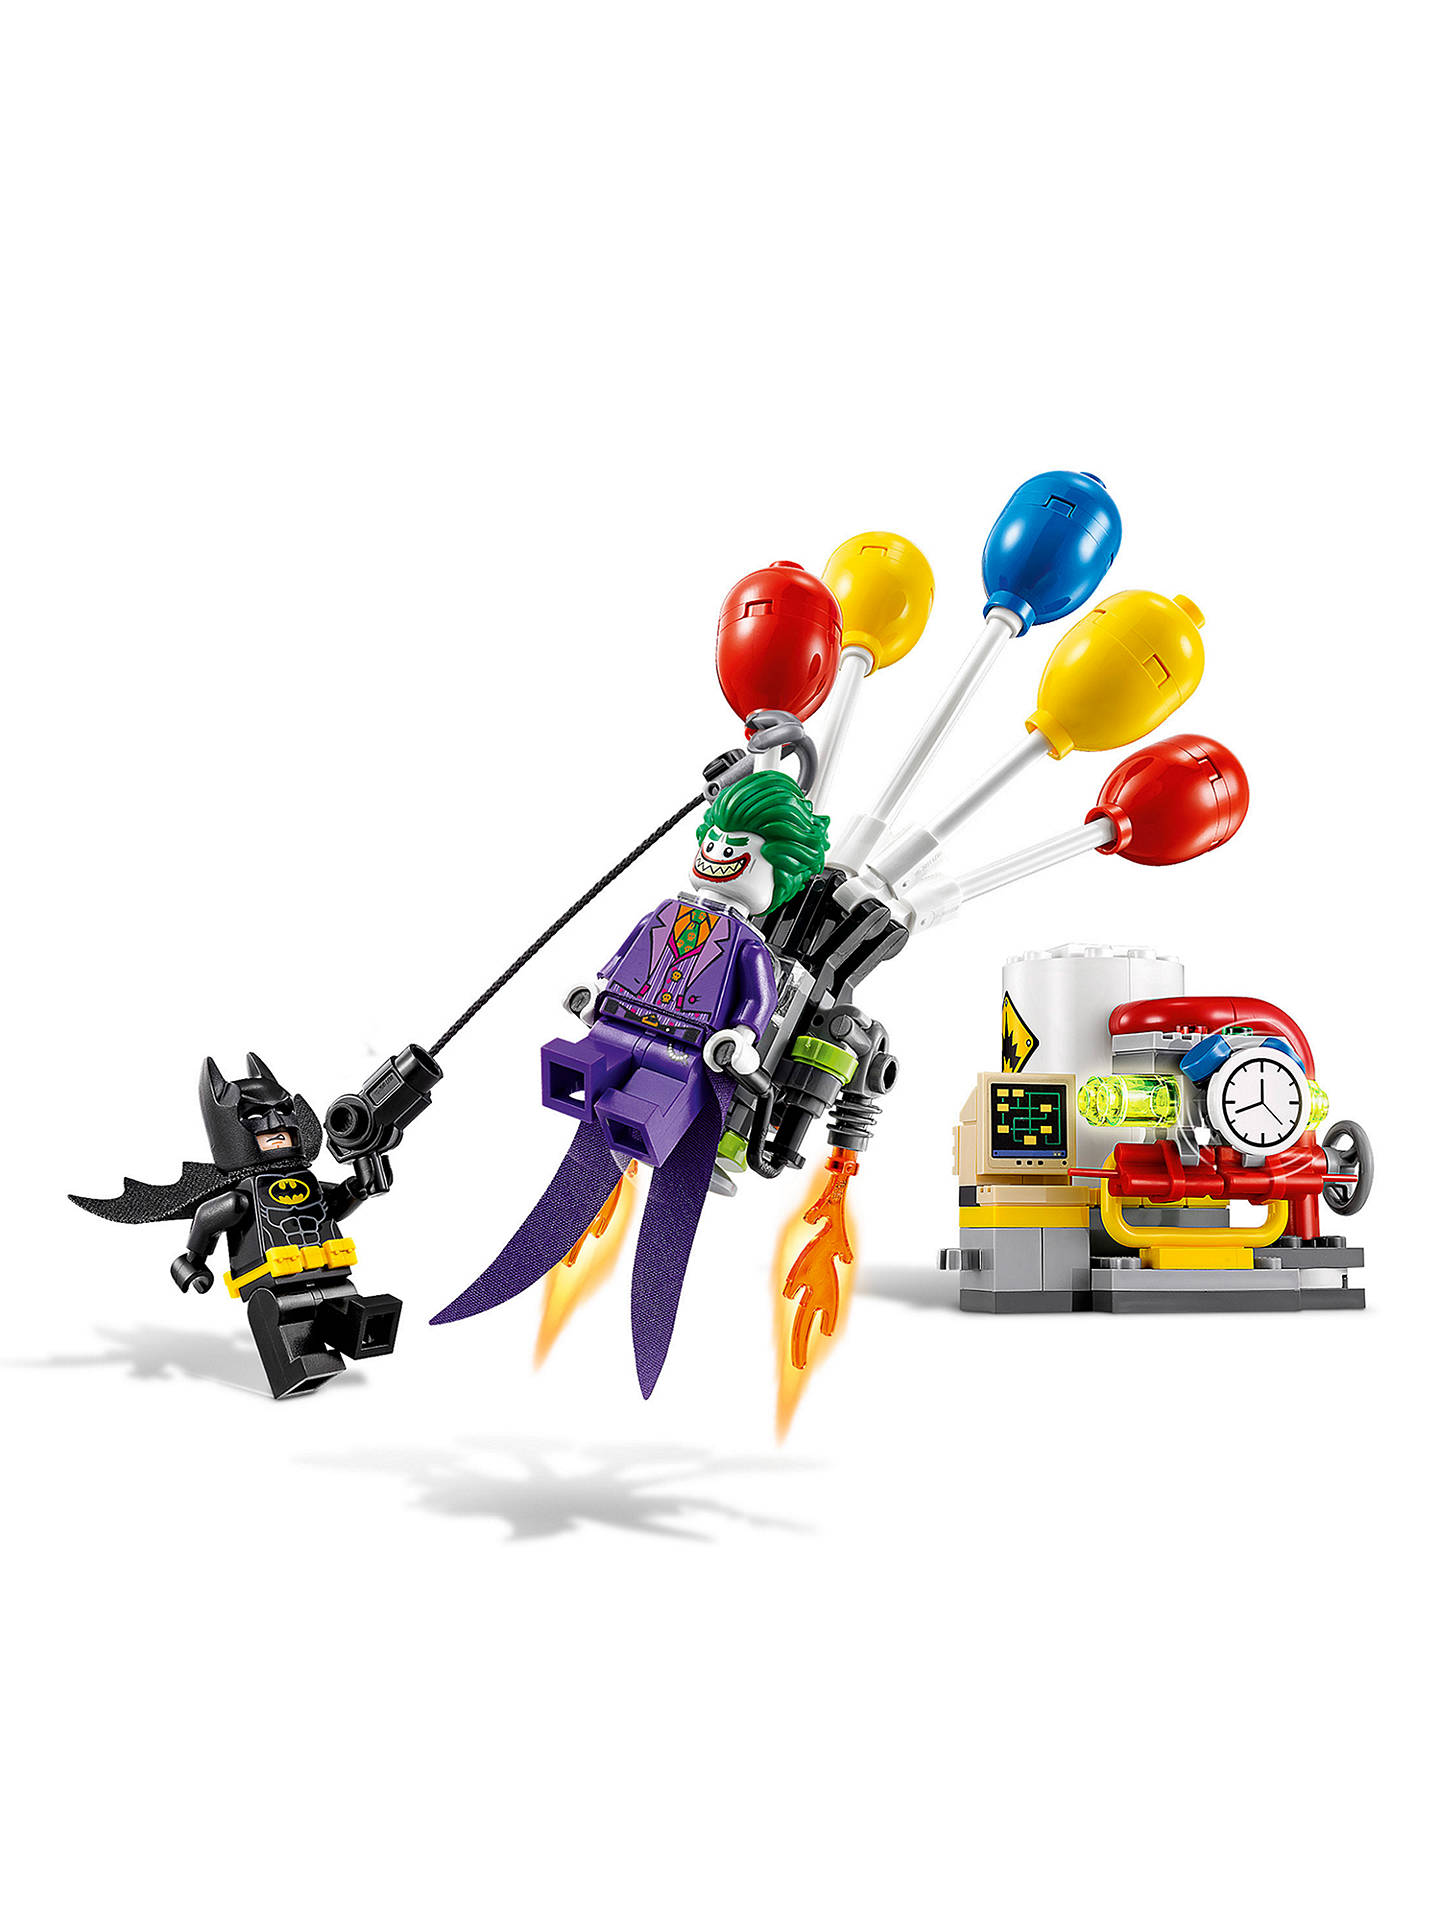 ... BuyLEGO The LEGO Batman Movie 70900 The Joker Balloon Online at johnlewis.com ...